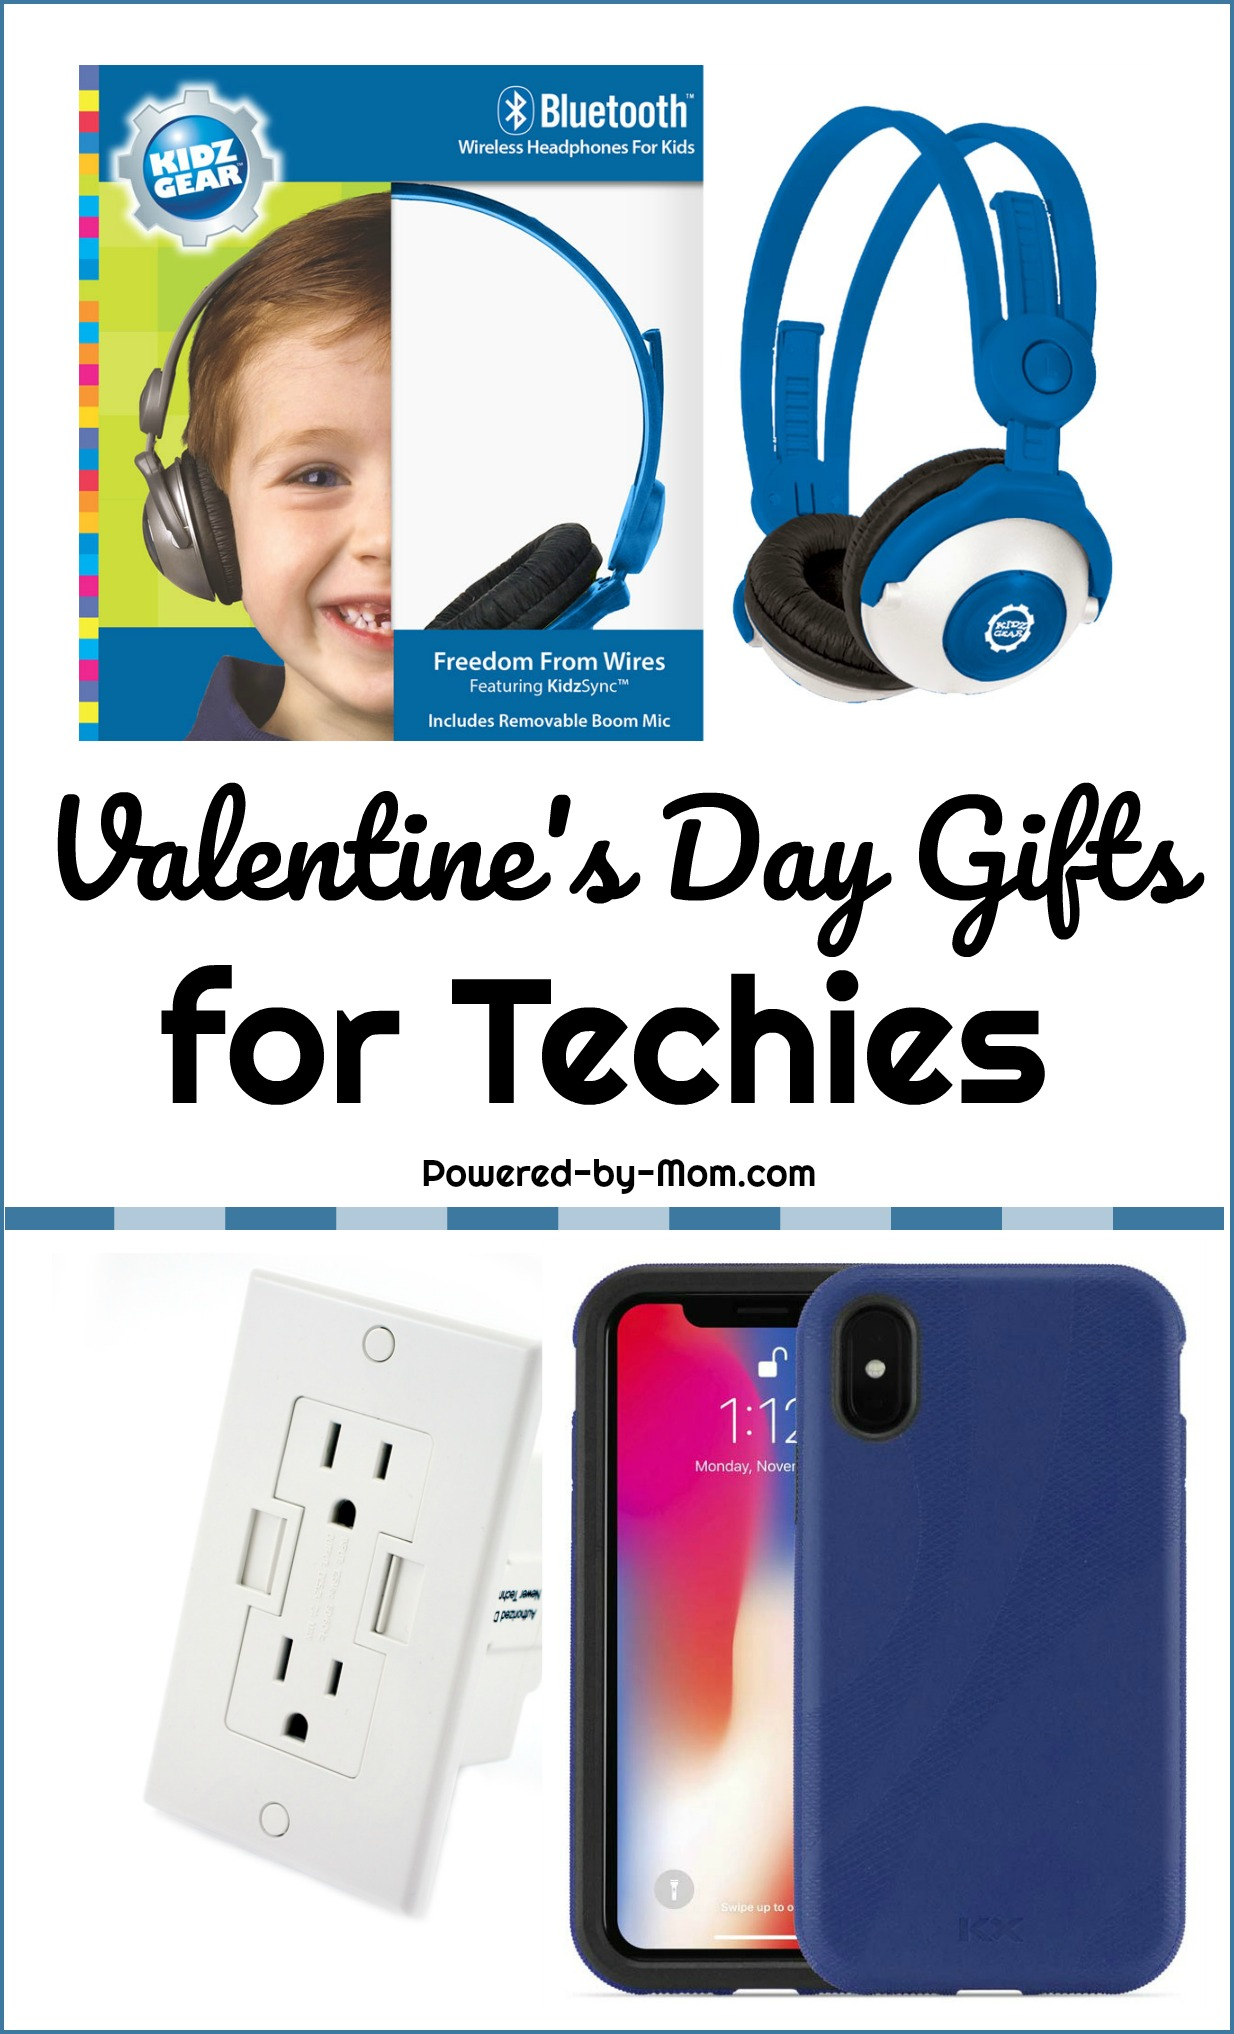 Valentine's Day Gift Ideas for Techies - Powered by Mom